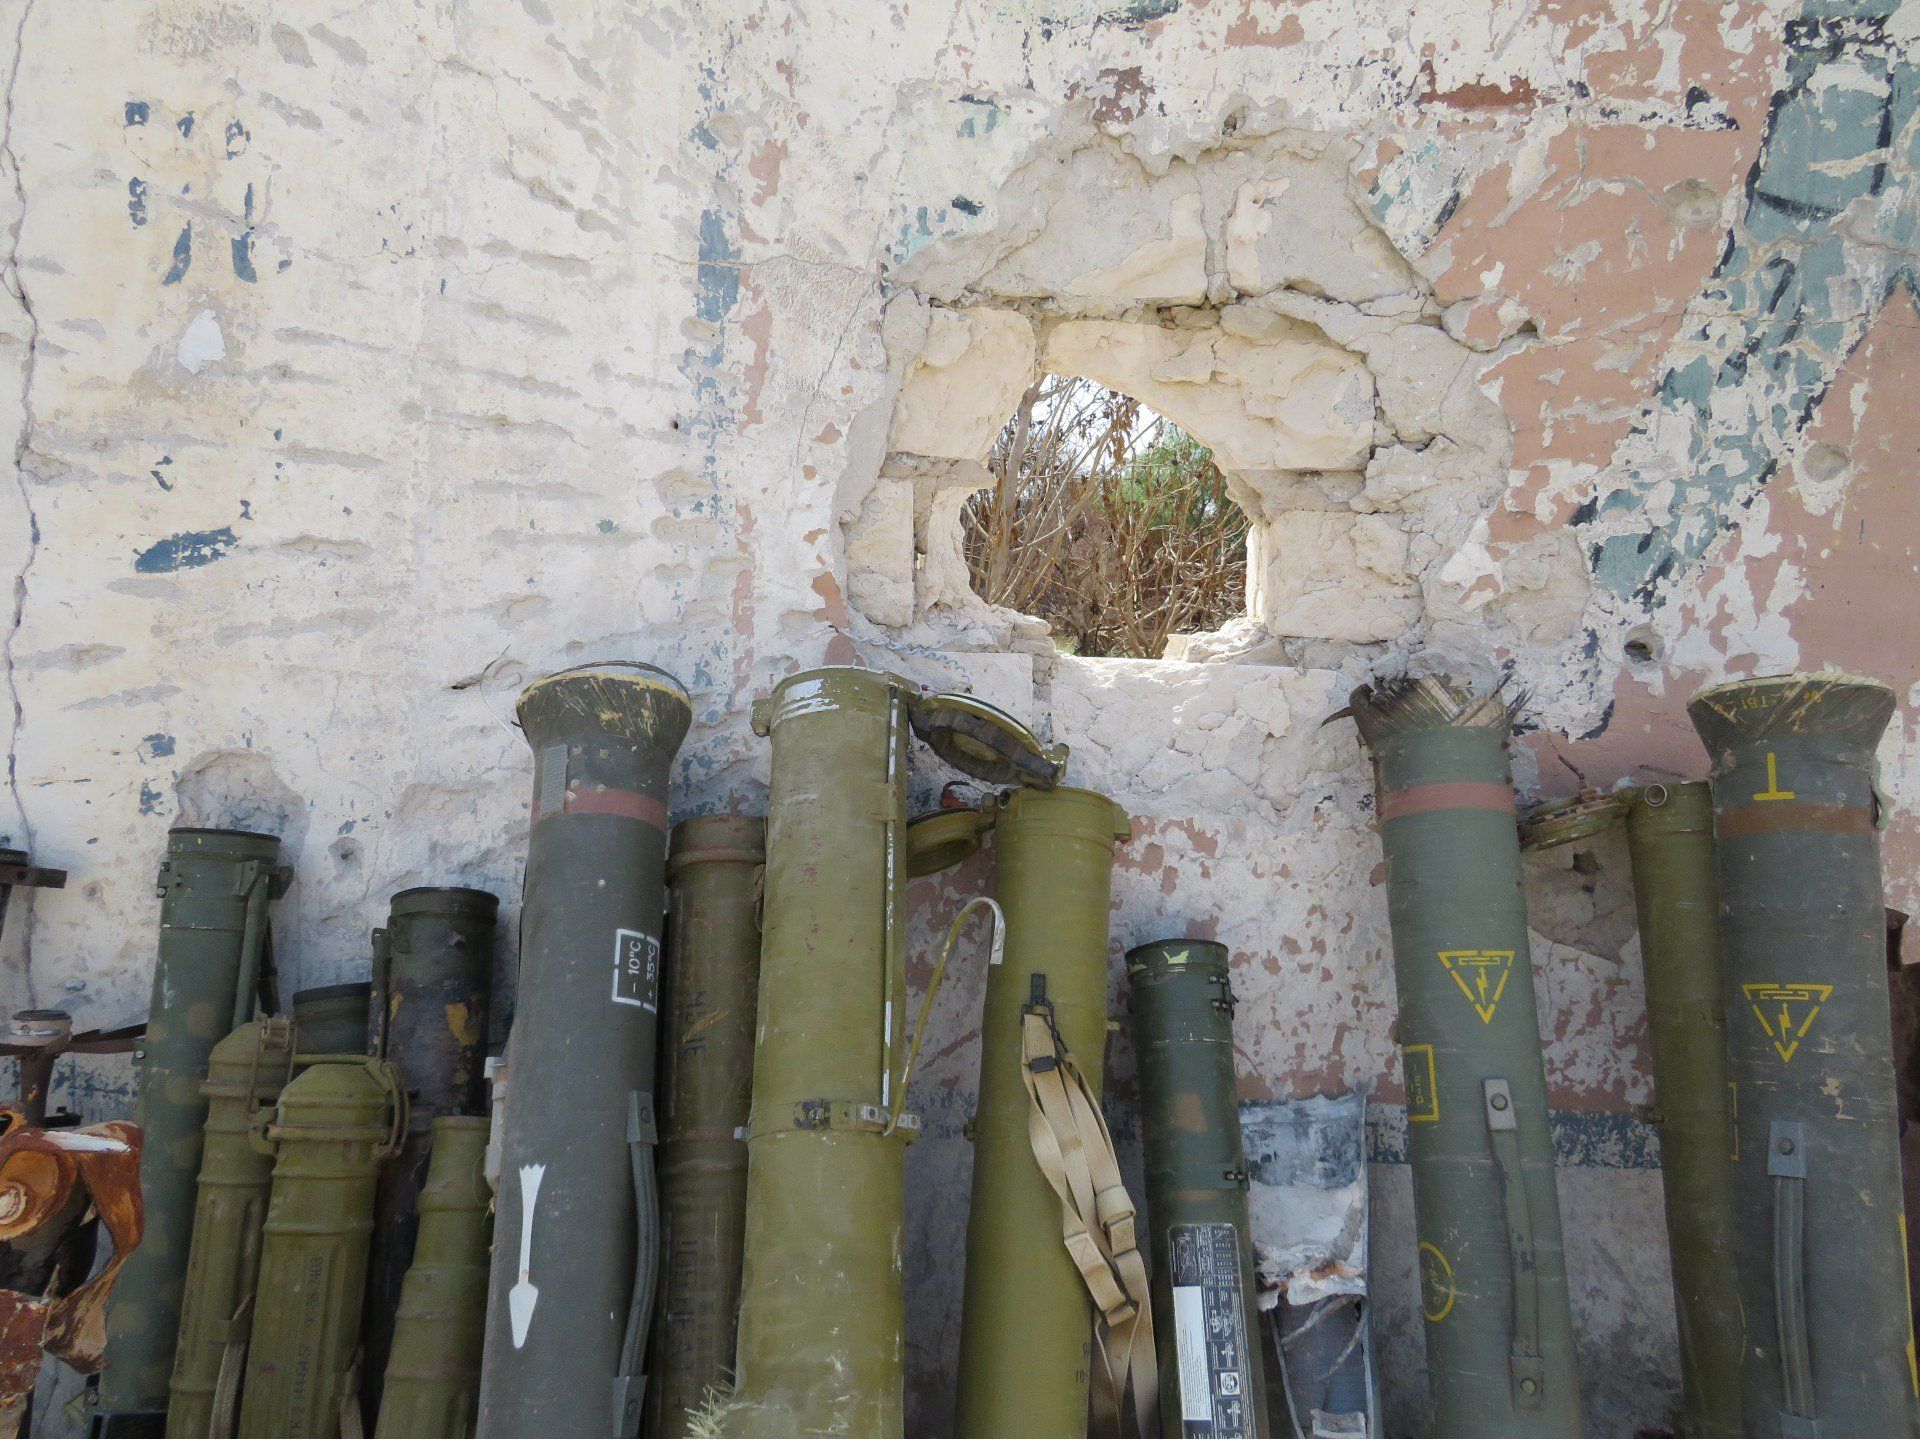 Rocket launchers recovered from residential battlefields and brought to a military base in Tripoli (MEE/Daniel Hilton)